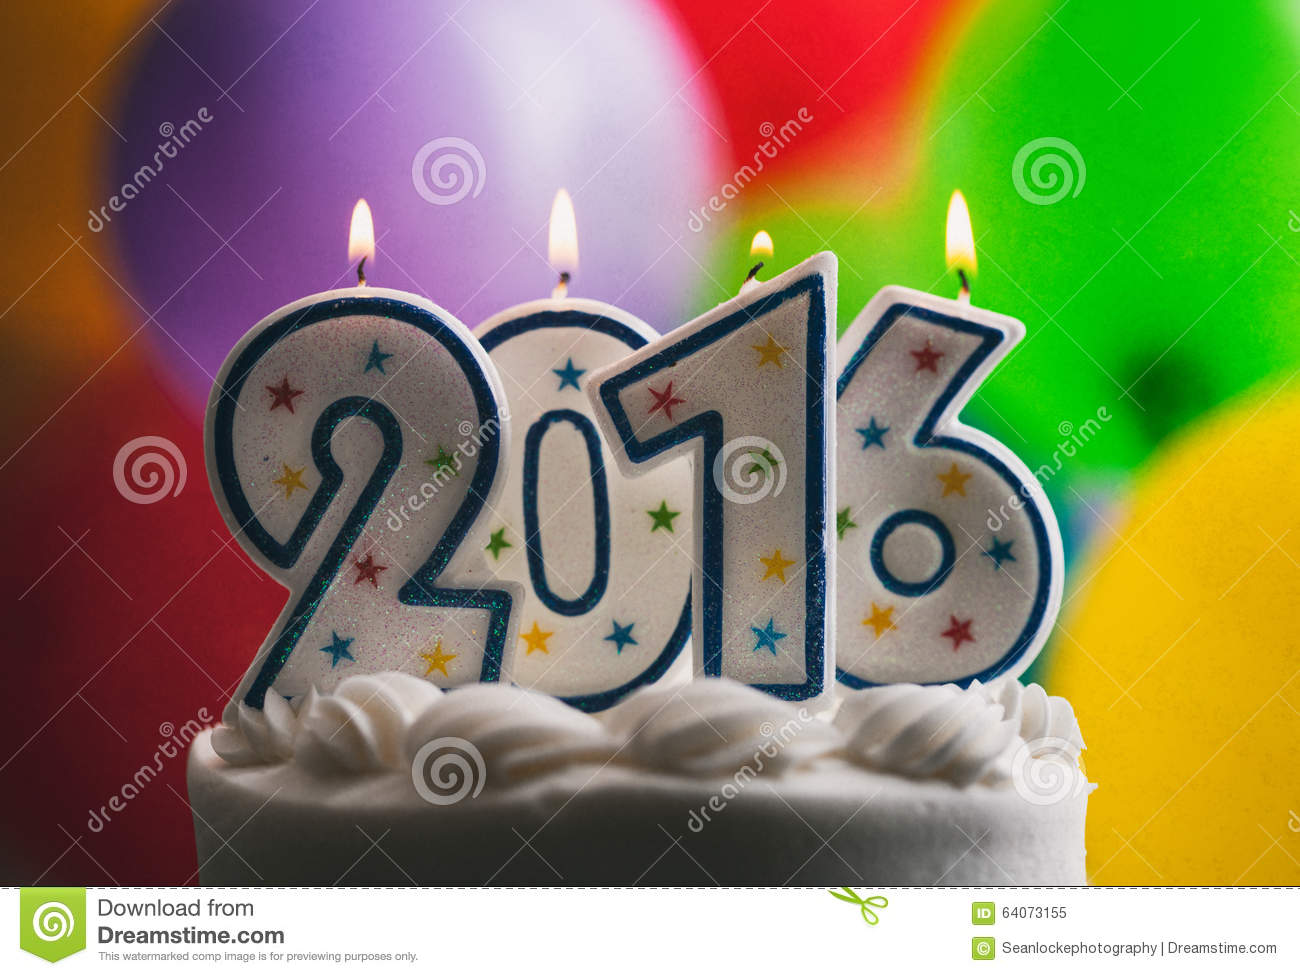 Happy New Year 2016 Birthday Candles On Cake Stock Image   Image of     Download Happy New Year 2016 Birthday Candles On Cake Stock Image   Image  of celebrate